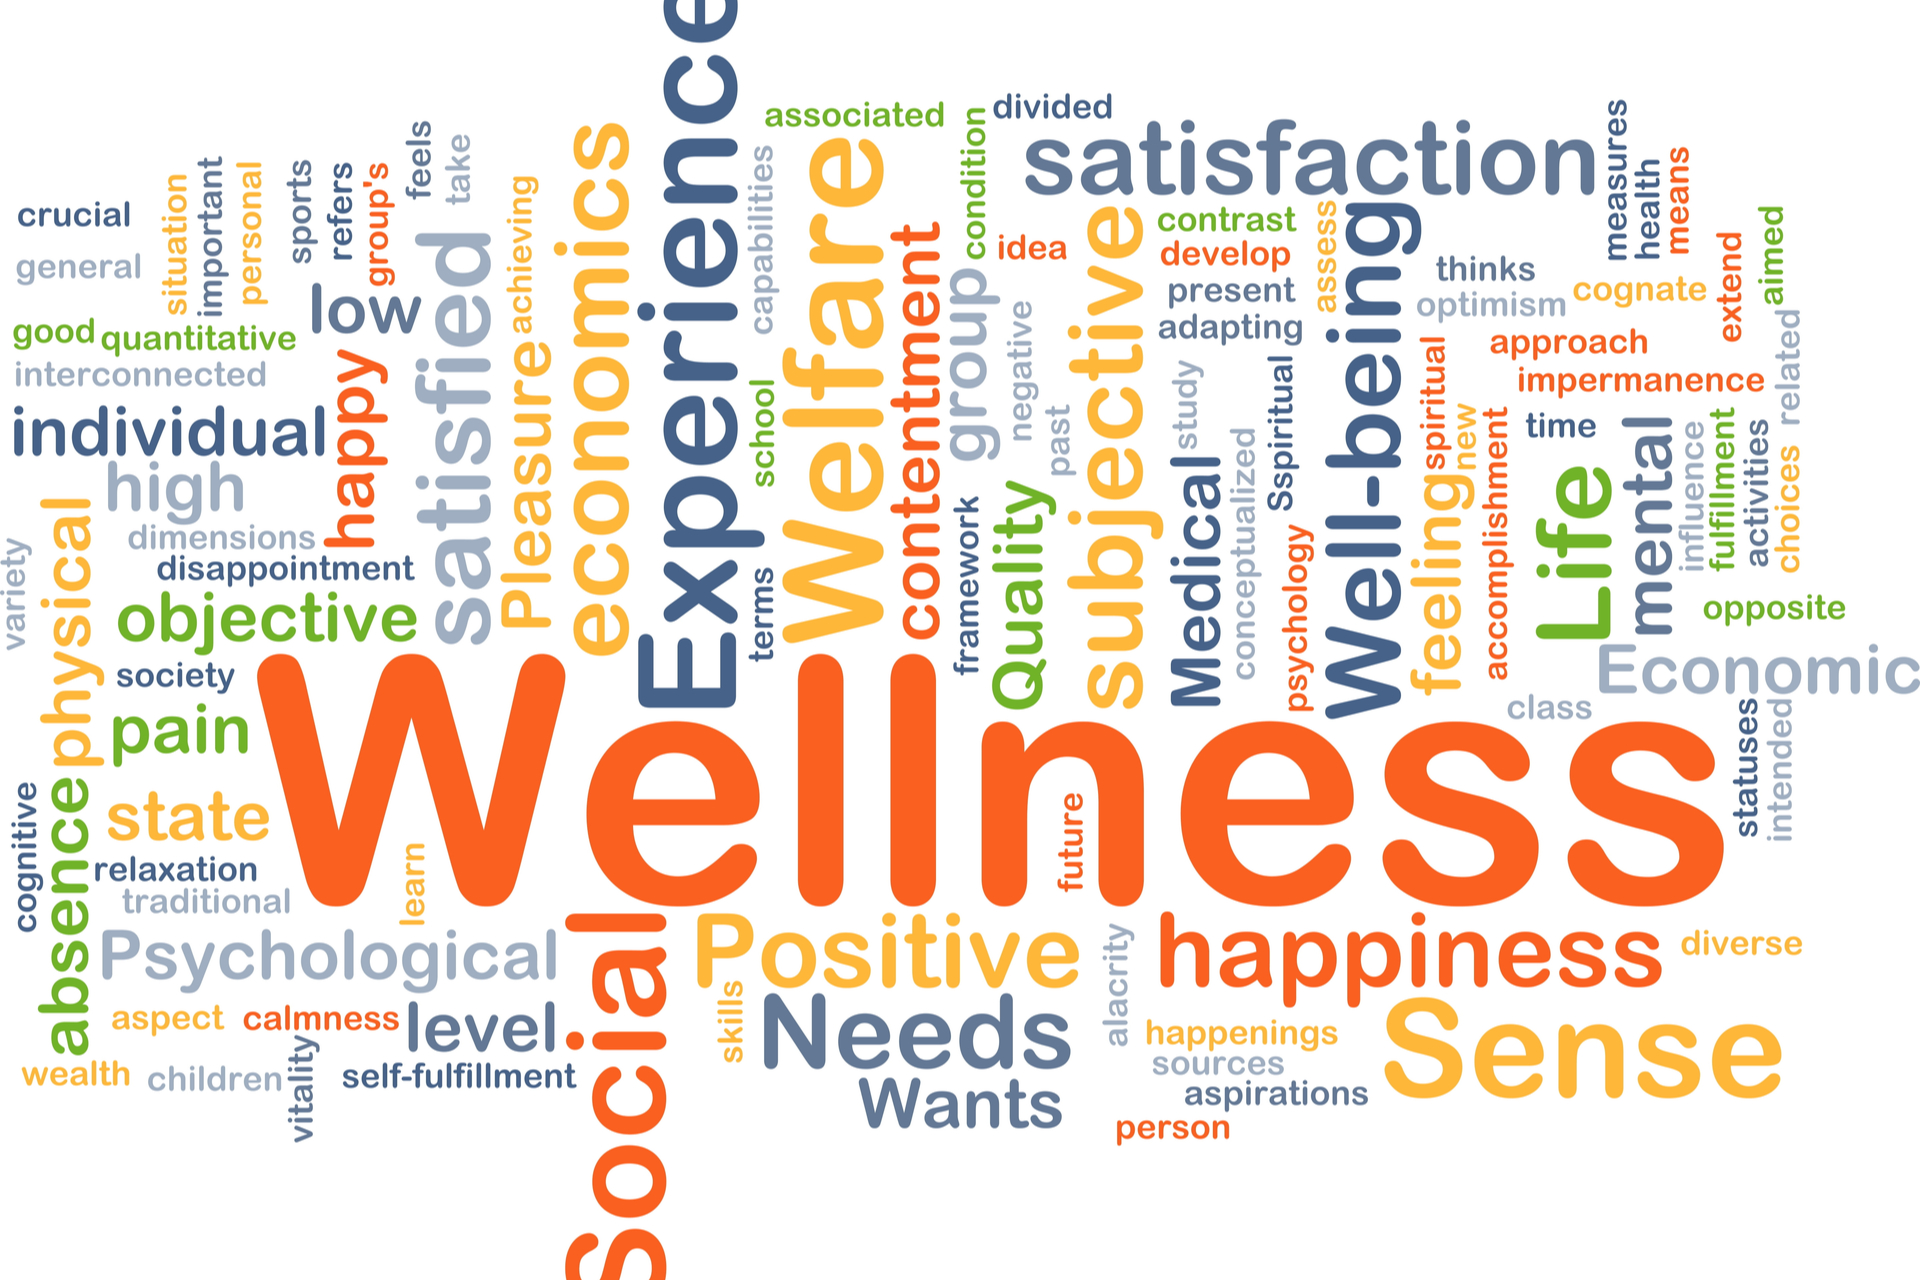 Build, Educate & Engage: Financial Wellness Benefits